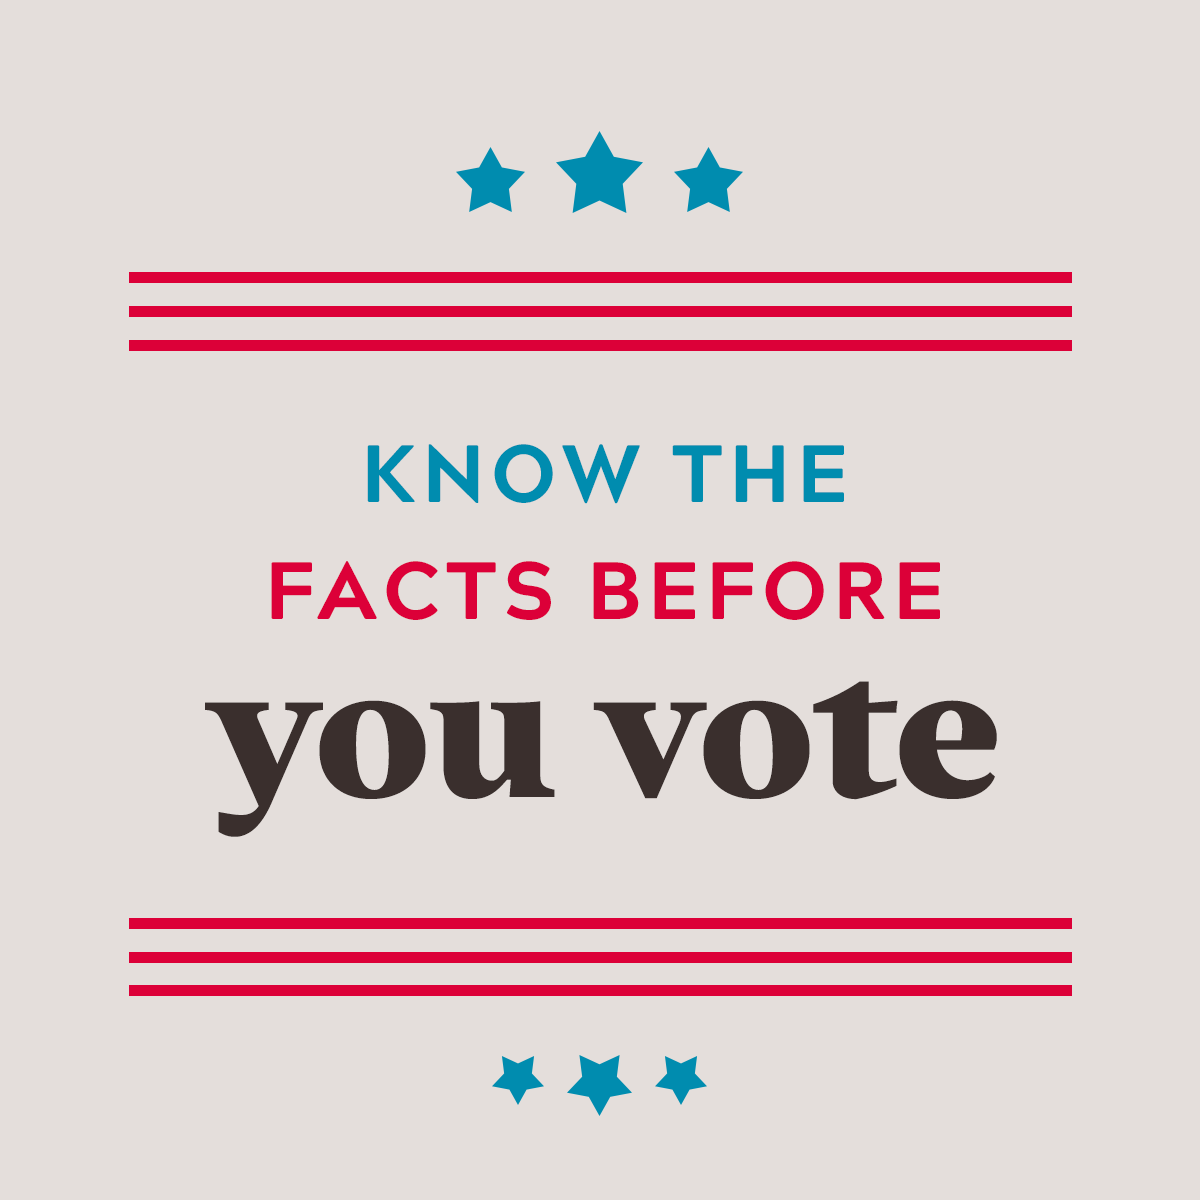 Know the facts before you vote